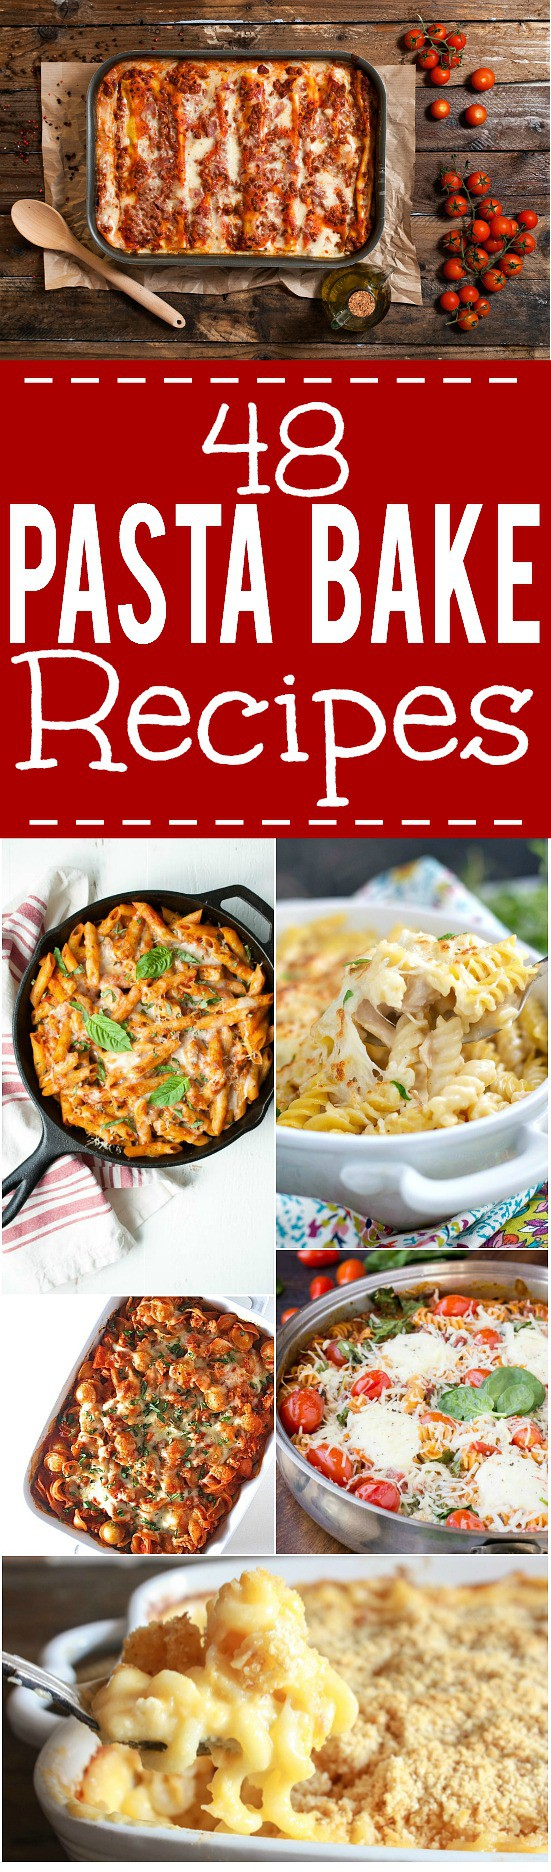 48 Pasta Bake Recipes - Make these simple, cheesy, saucy Pasta Bake Recipes for a quick and easy, crowd-pleasing dinner. With 48 of the BEST baked pasta dishes to choose from, you'll definitely find one you love! Perfect for easy family dinner!